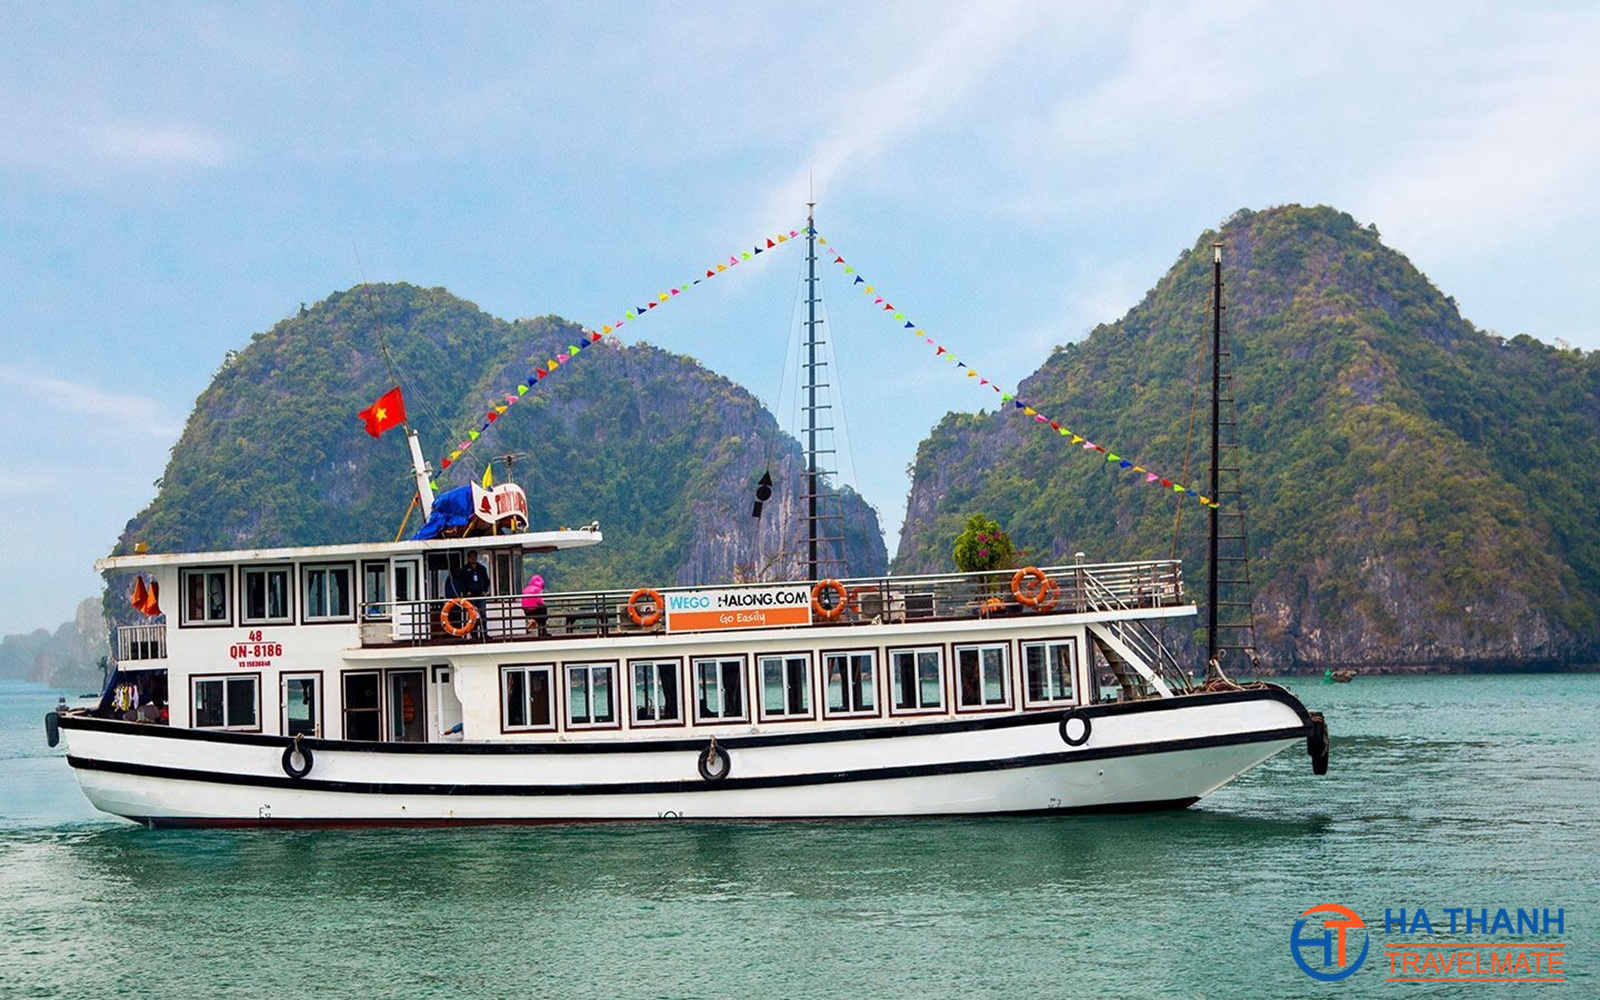 Wego Halong Day Cruise